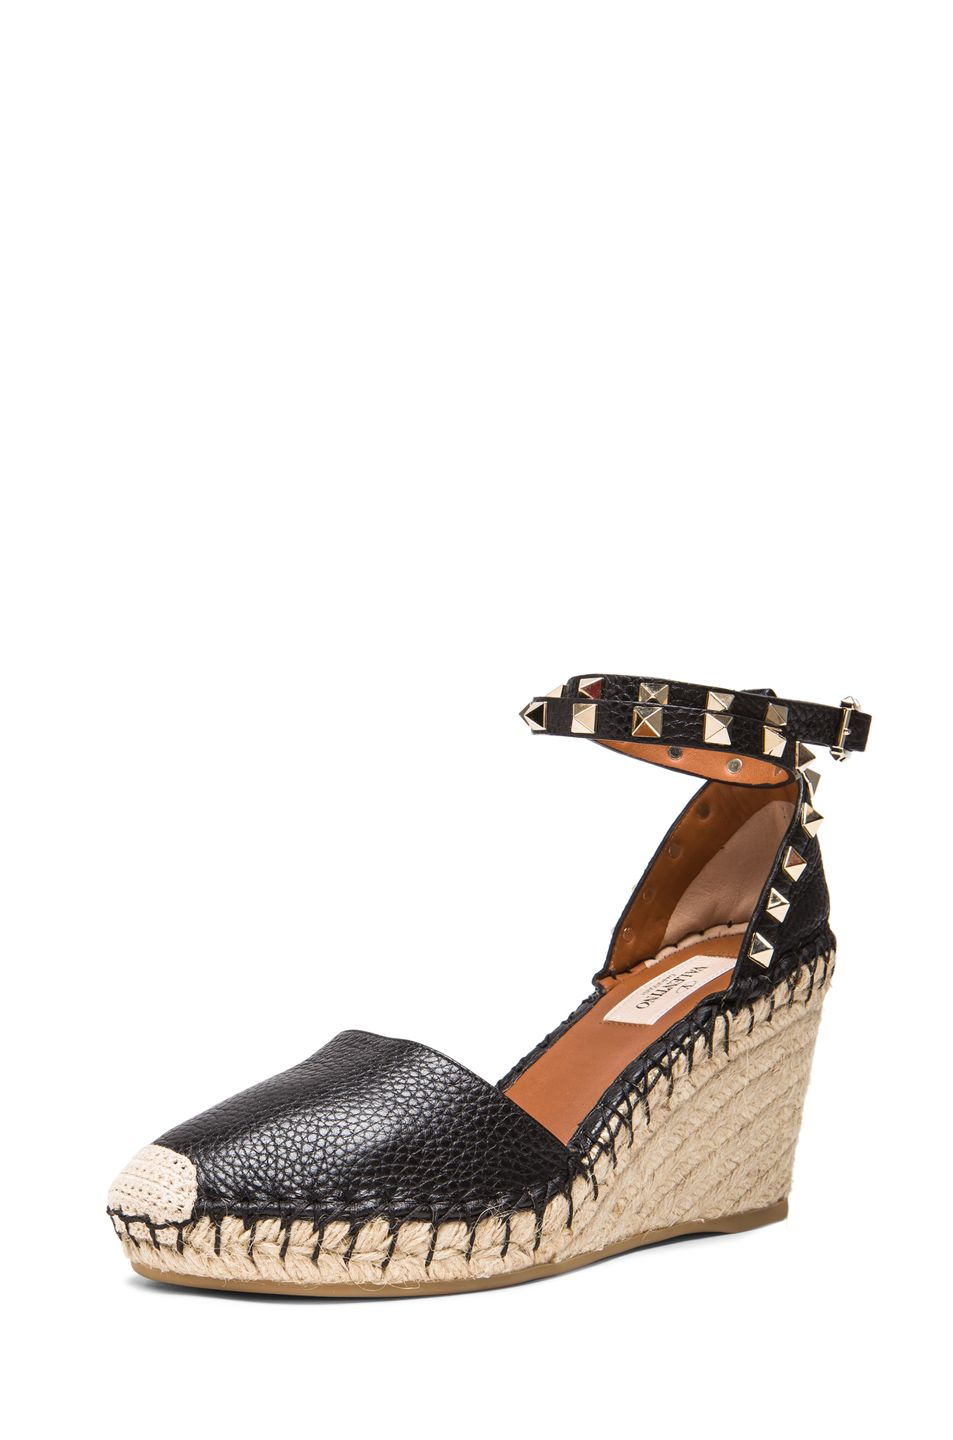 a4ef71a5644 VALENTINO ROCKSTUD DOUBLE ESPADRILLE LEATHER WEDGES